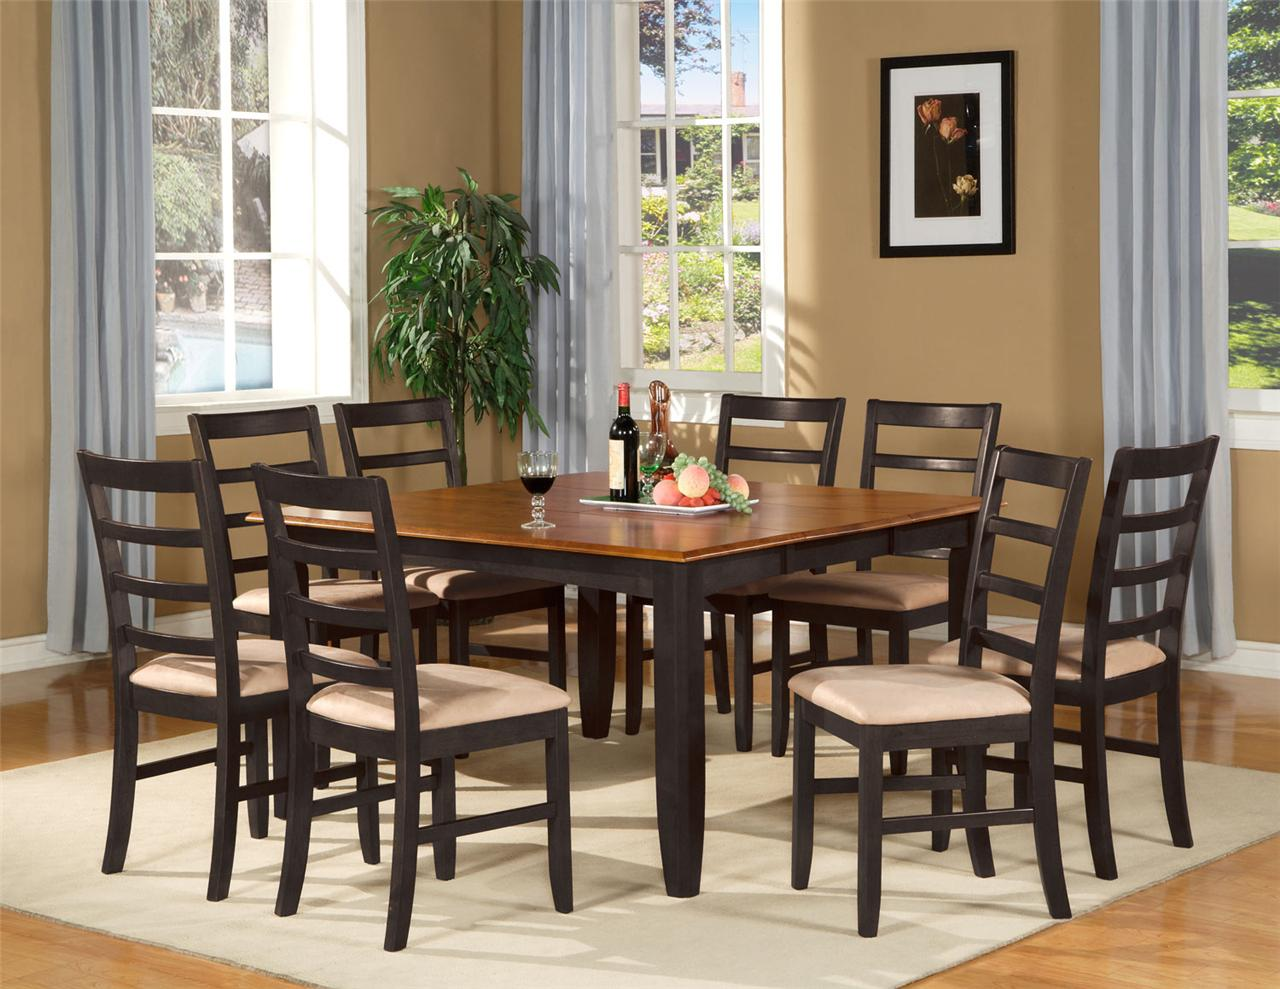 7 pc square dinette kitchen dining table set 6 chairs ebay for Kitchen dining table chairs